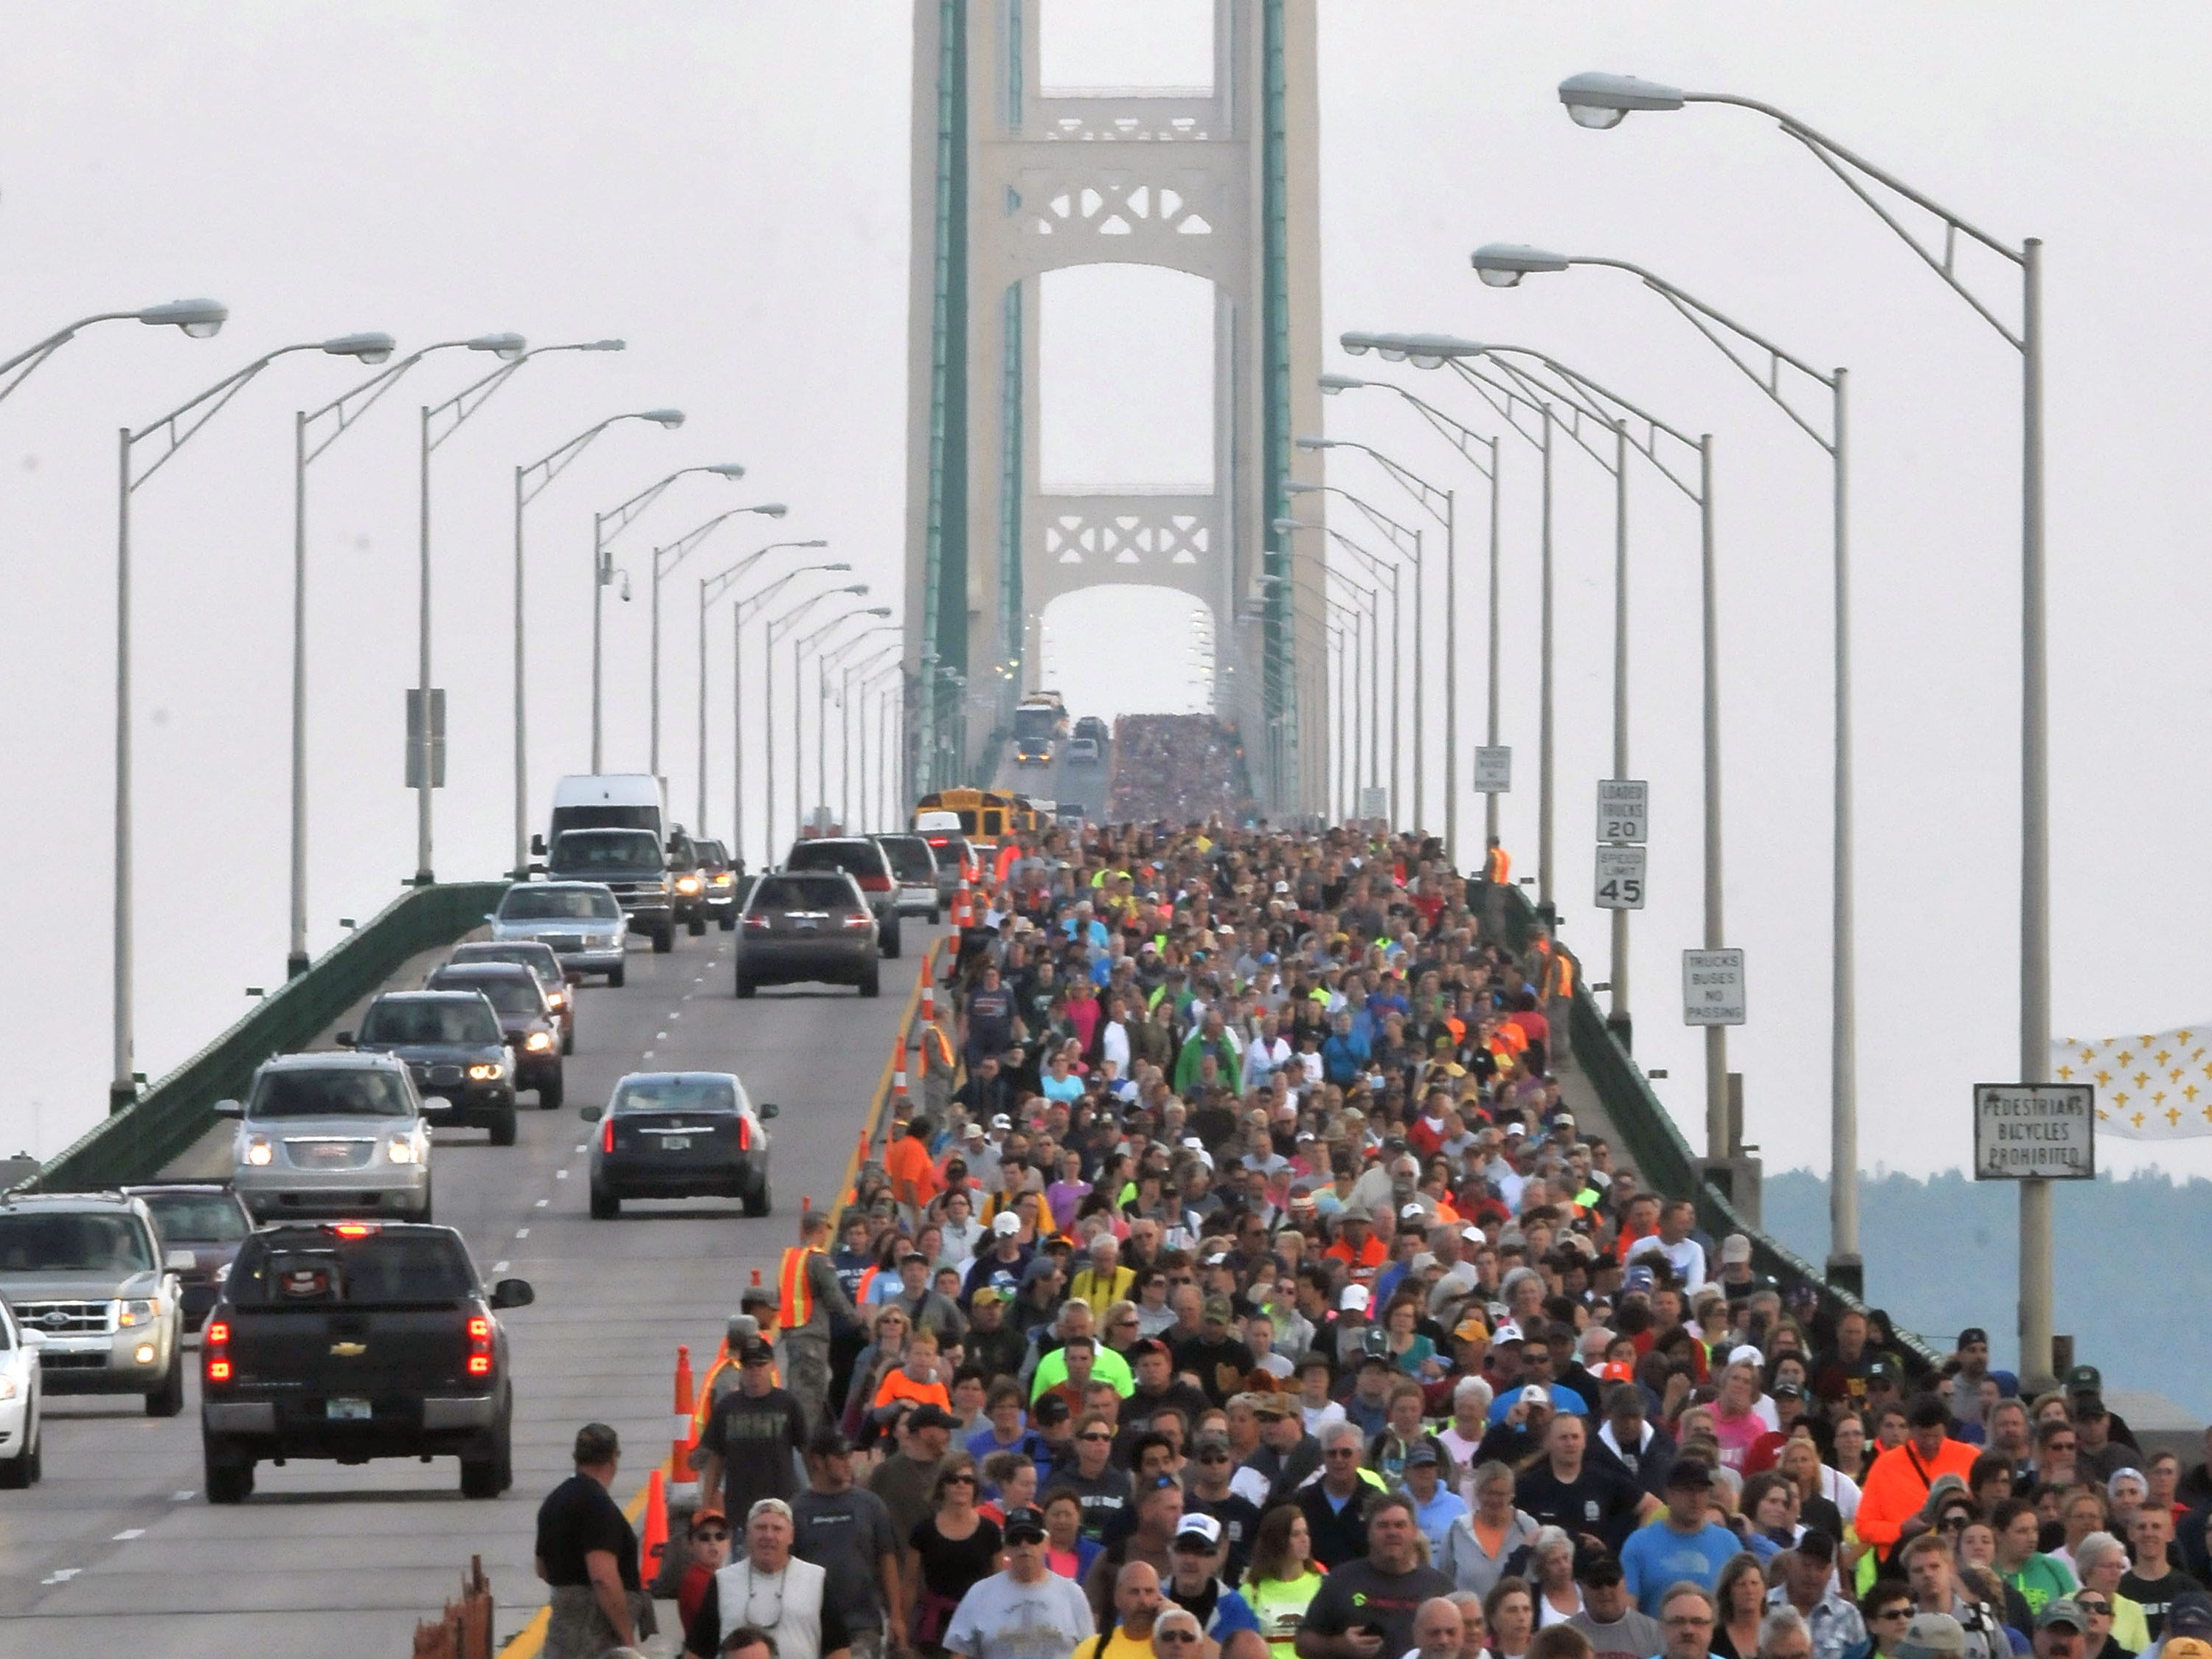 Walkers cross the five-mile-long Mackinac Bridge Monday, Sept. 1, 2014 celebrating Labor Day during the 57th annual Labor Day walk. Lead by Michigan Gov. Rick Snyder, thousands cross from the upper peninsula of Michigan to the lower peninsula, the only day pedestrians are allowed on the span.